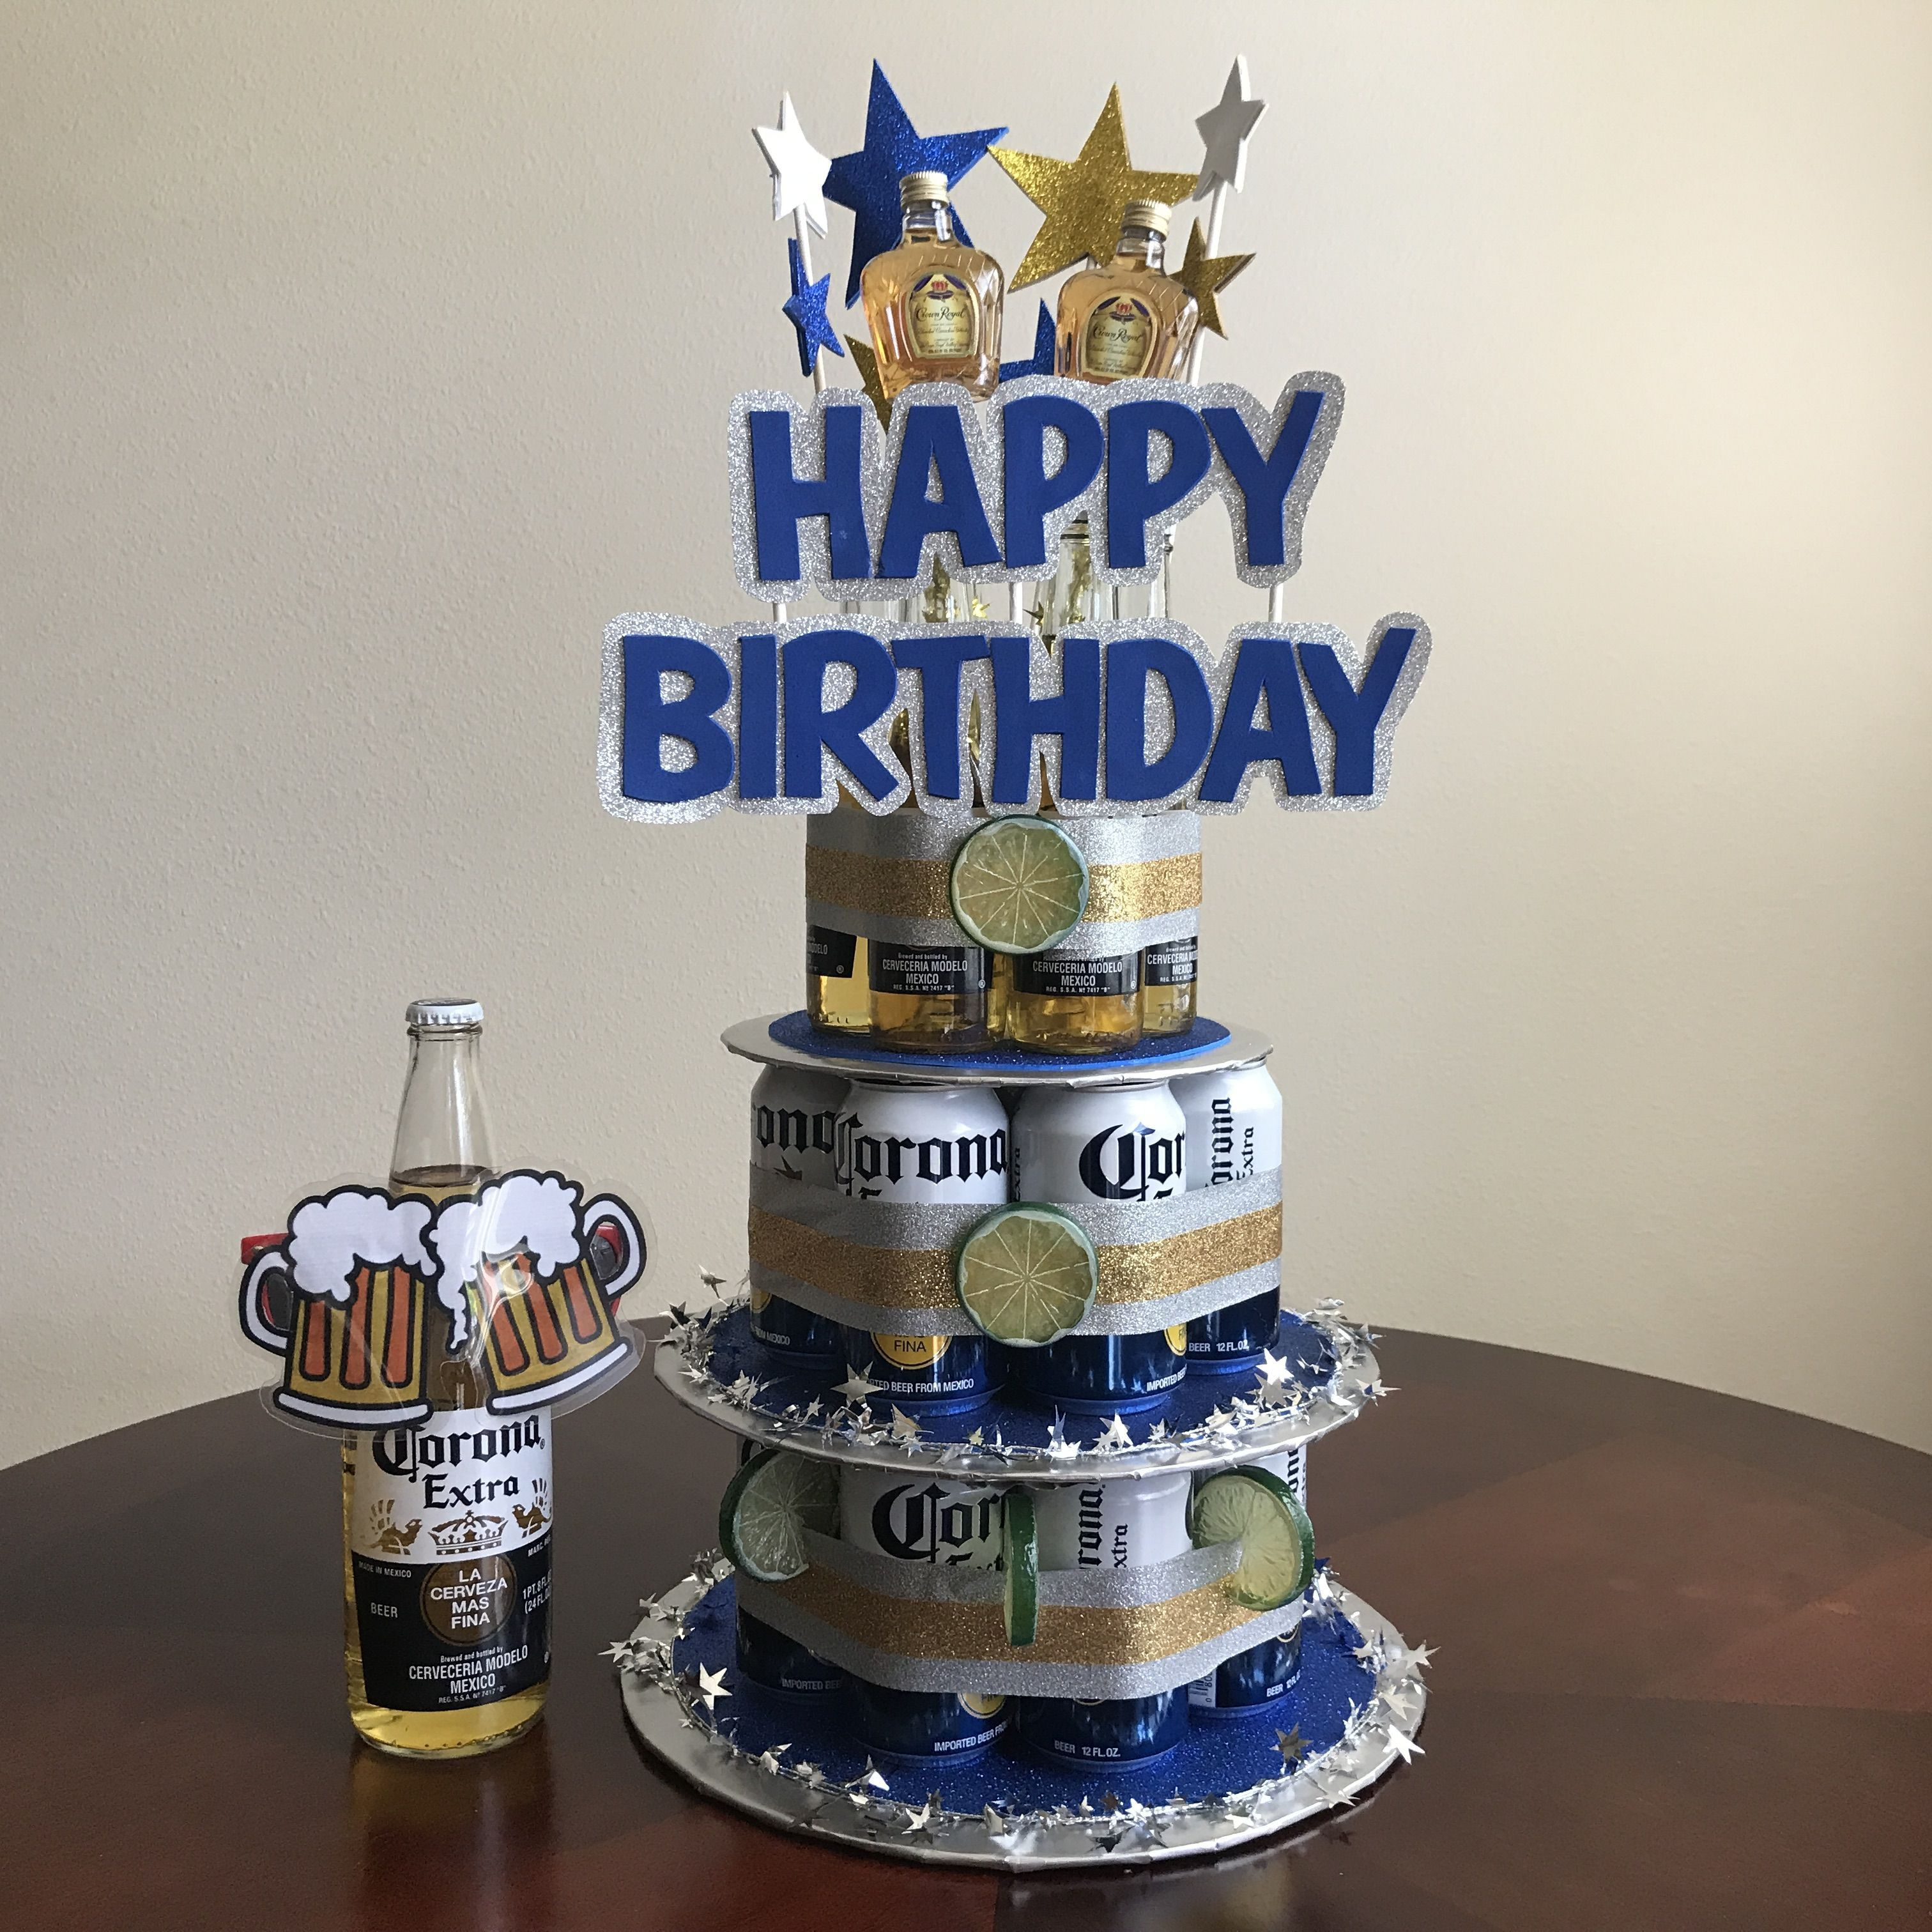 Party Happy Birthday Party Cake Toppers Decoration for Kids Birthday GP3